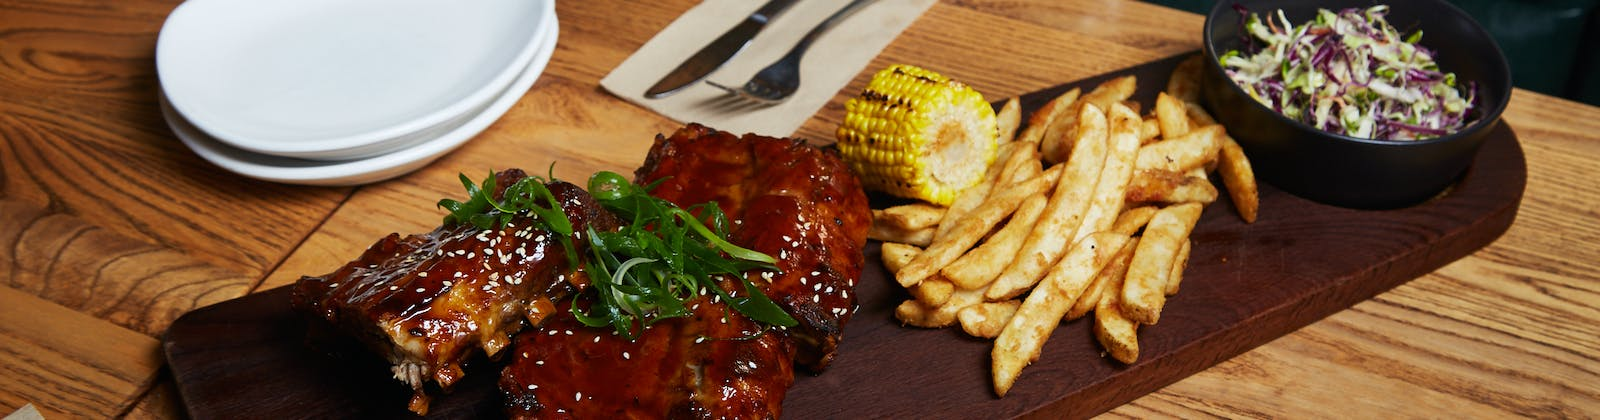 ribs platter with slaw, corn, and fries